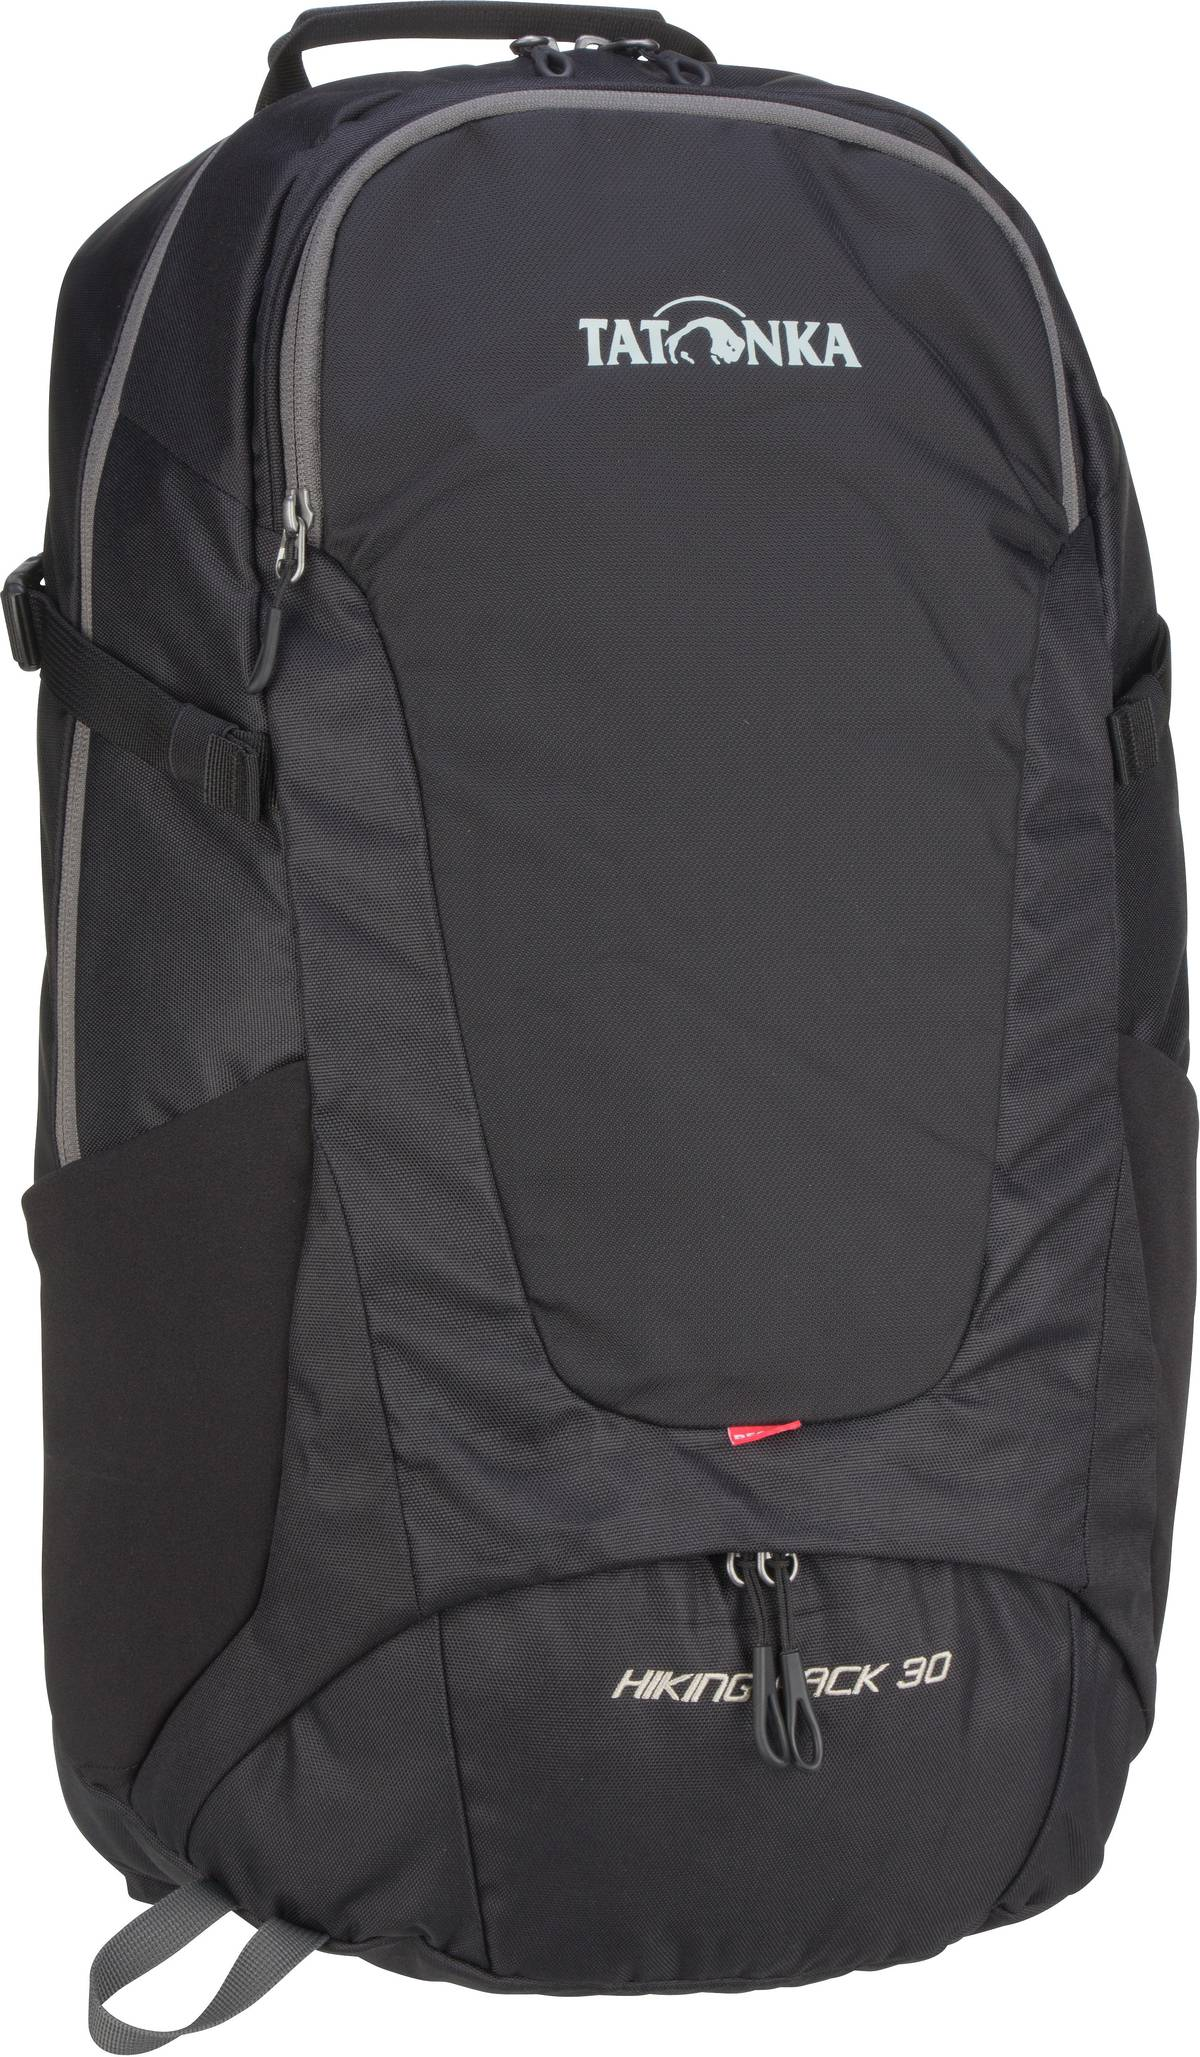 Wanderrucksack Hiking Pack 30 Black (30 Liter)